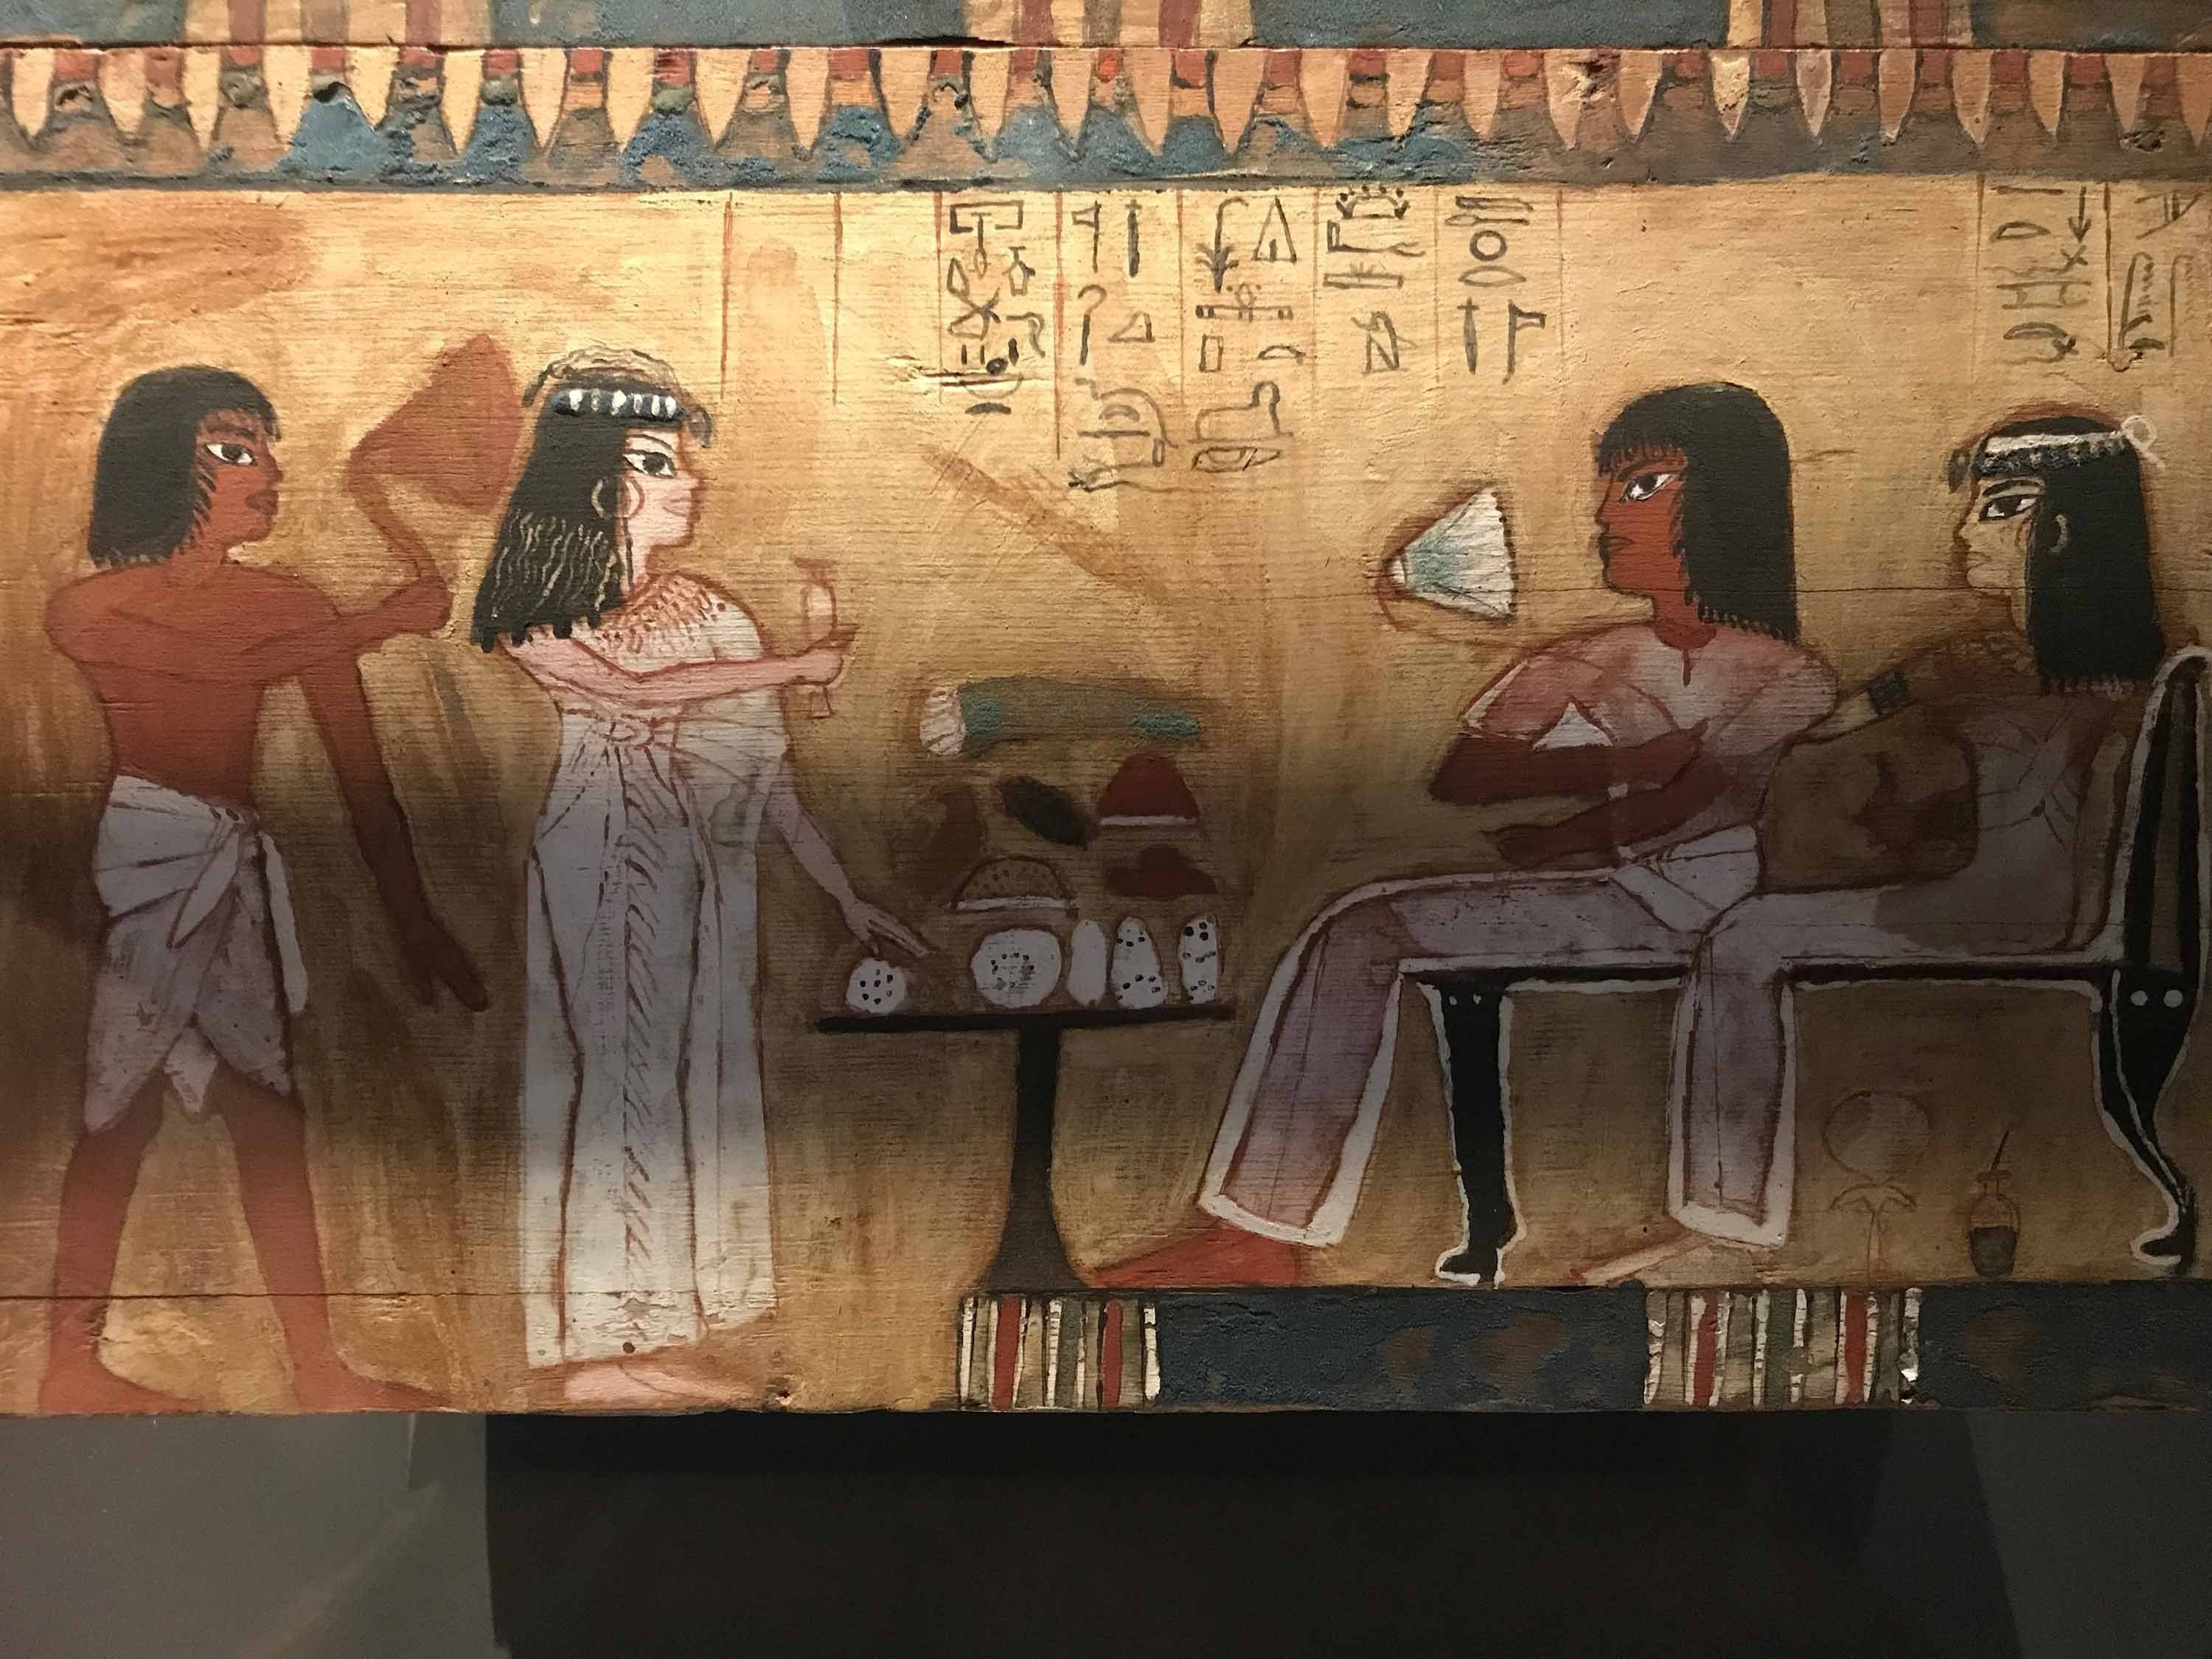 Museum displays parity of women in ancient Egypt